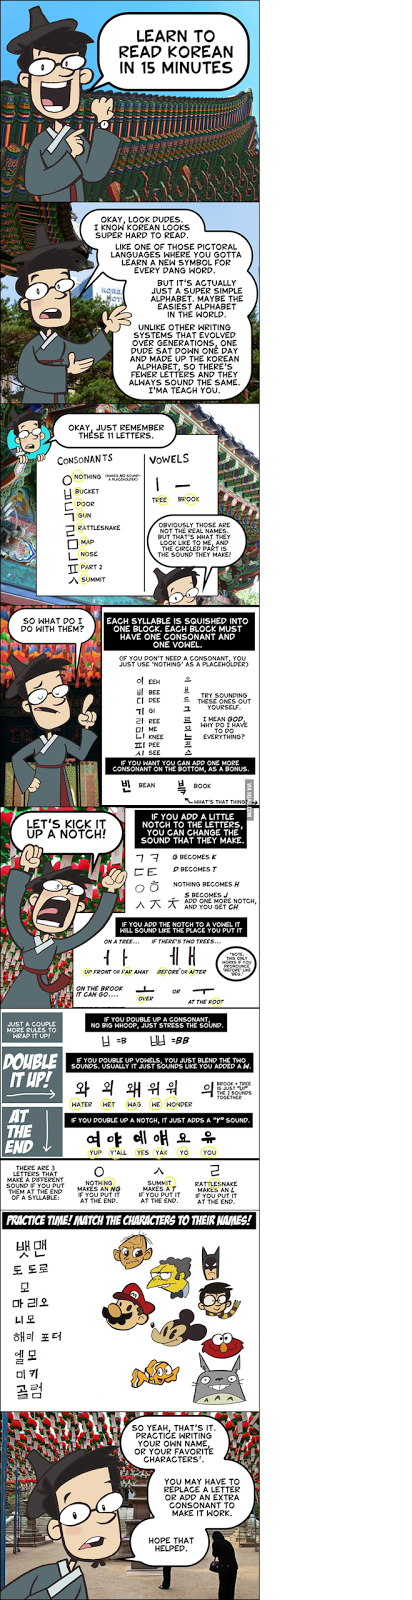 study korean together learn to read korean in 15 minutes webcomic